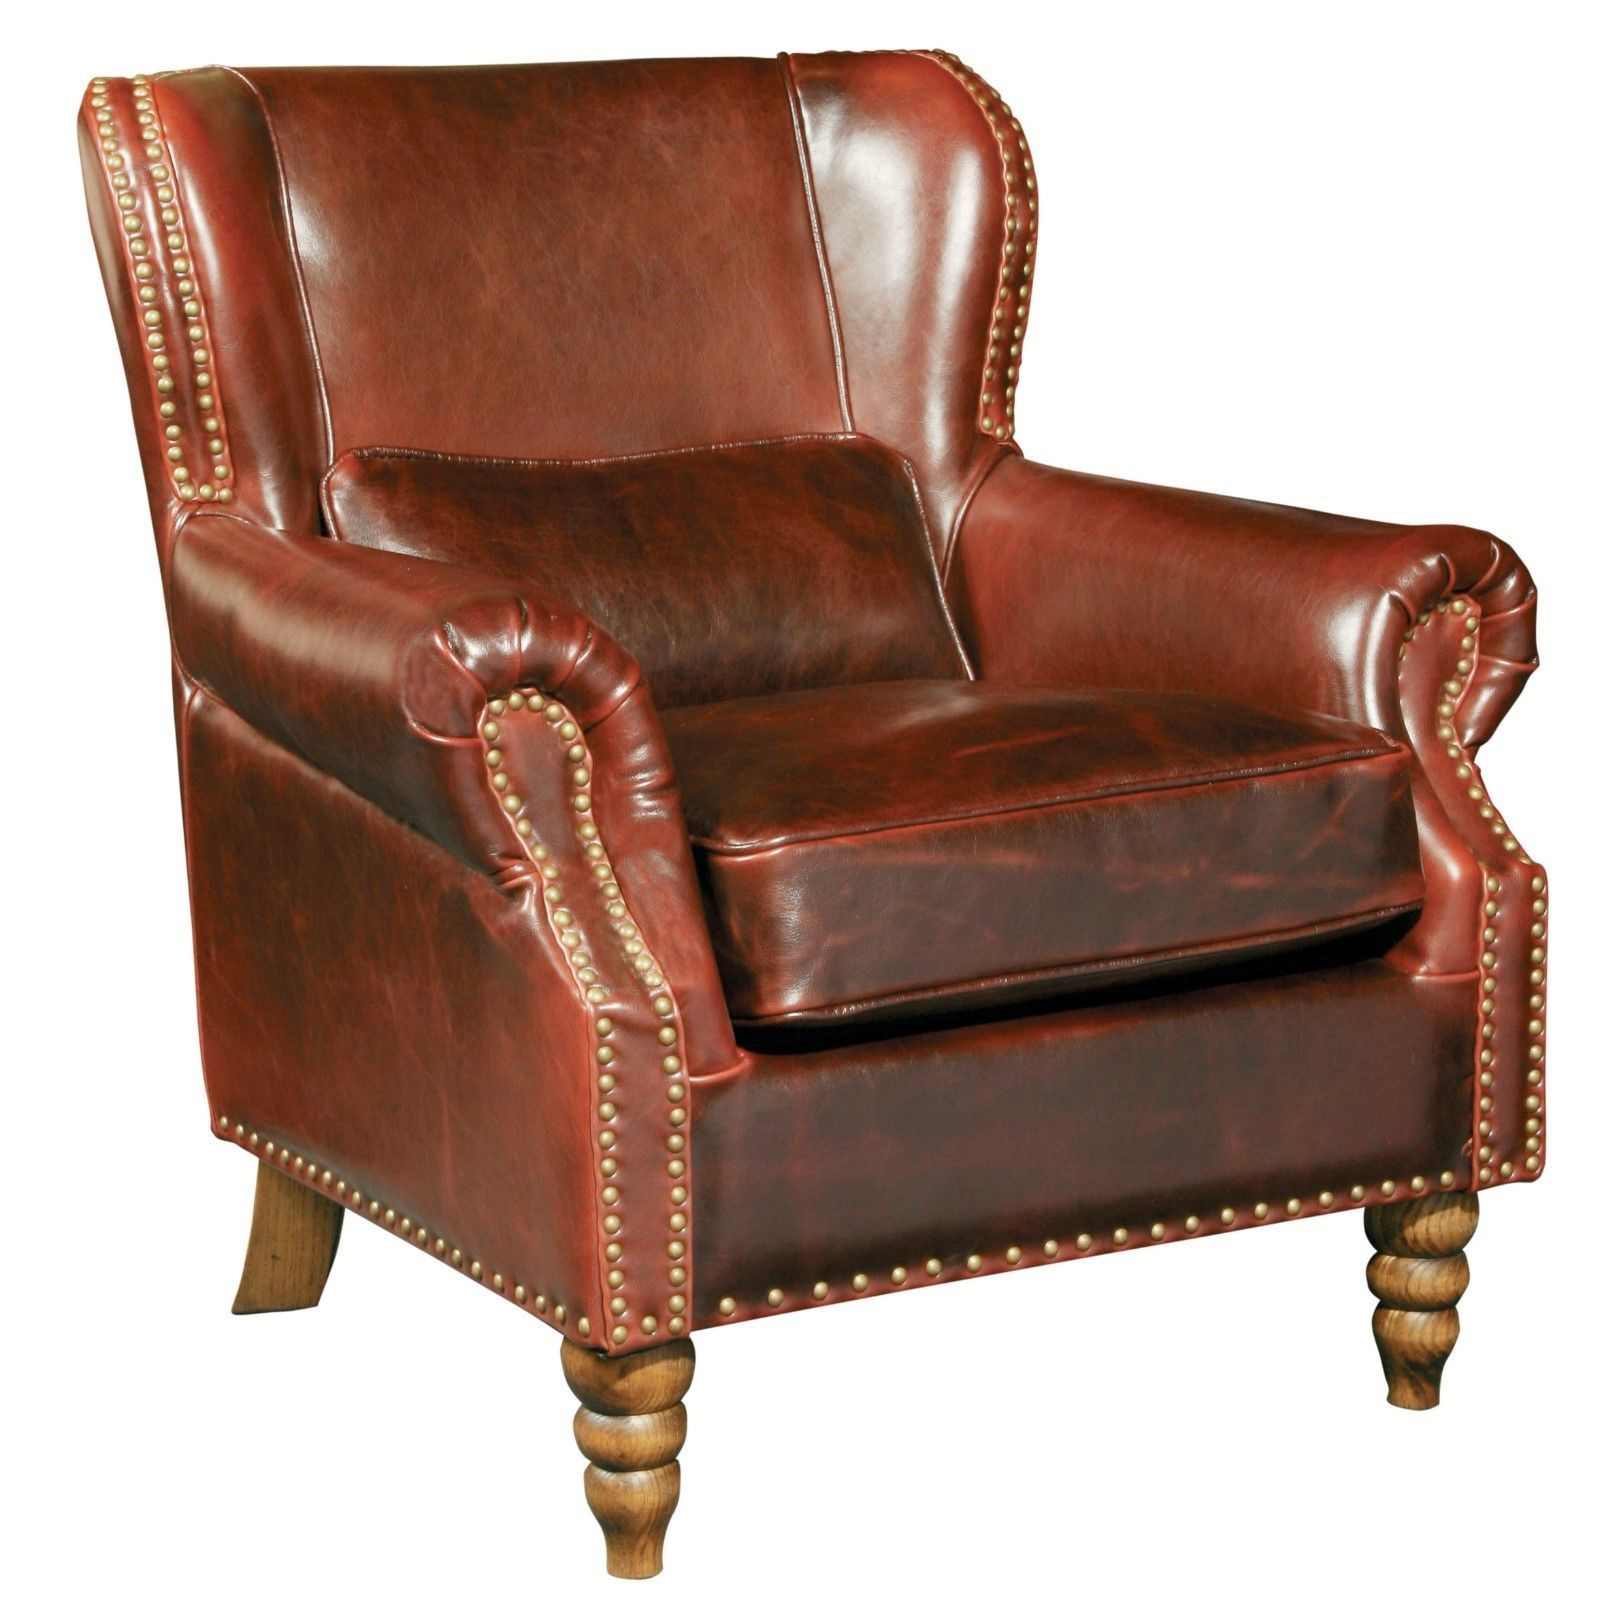 Living room furniture tall wingback brown genuine leather club chair 35 5 39 39 h chairs for Wingback recliner chairs living room